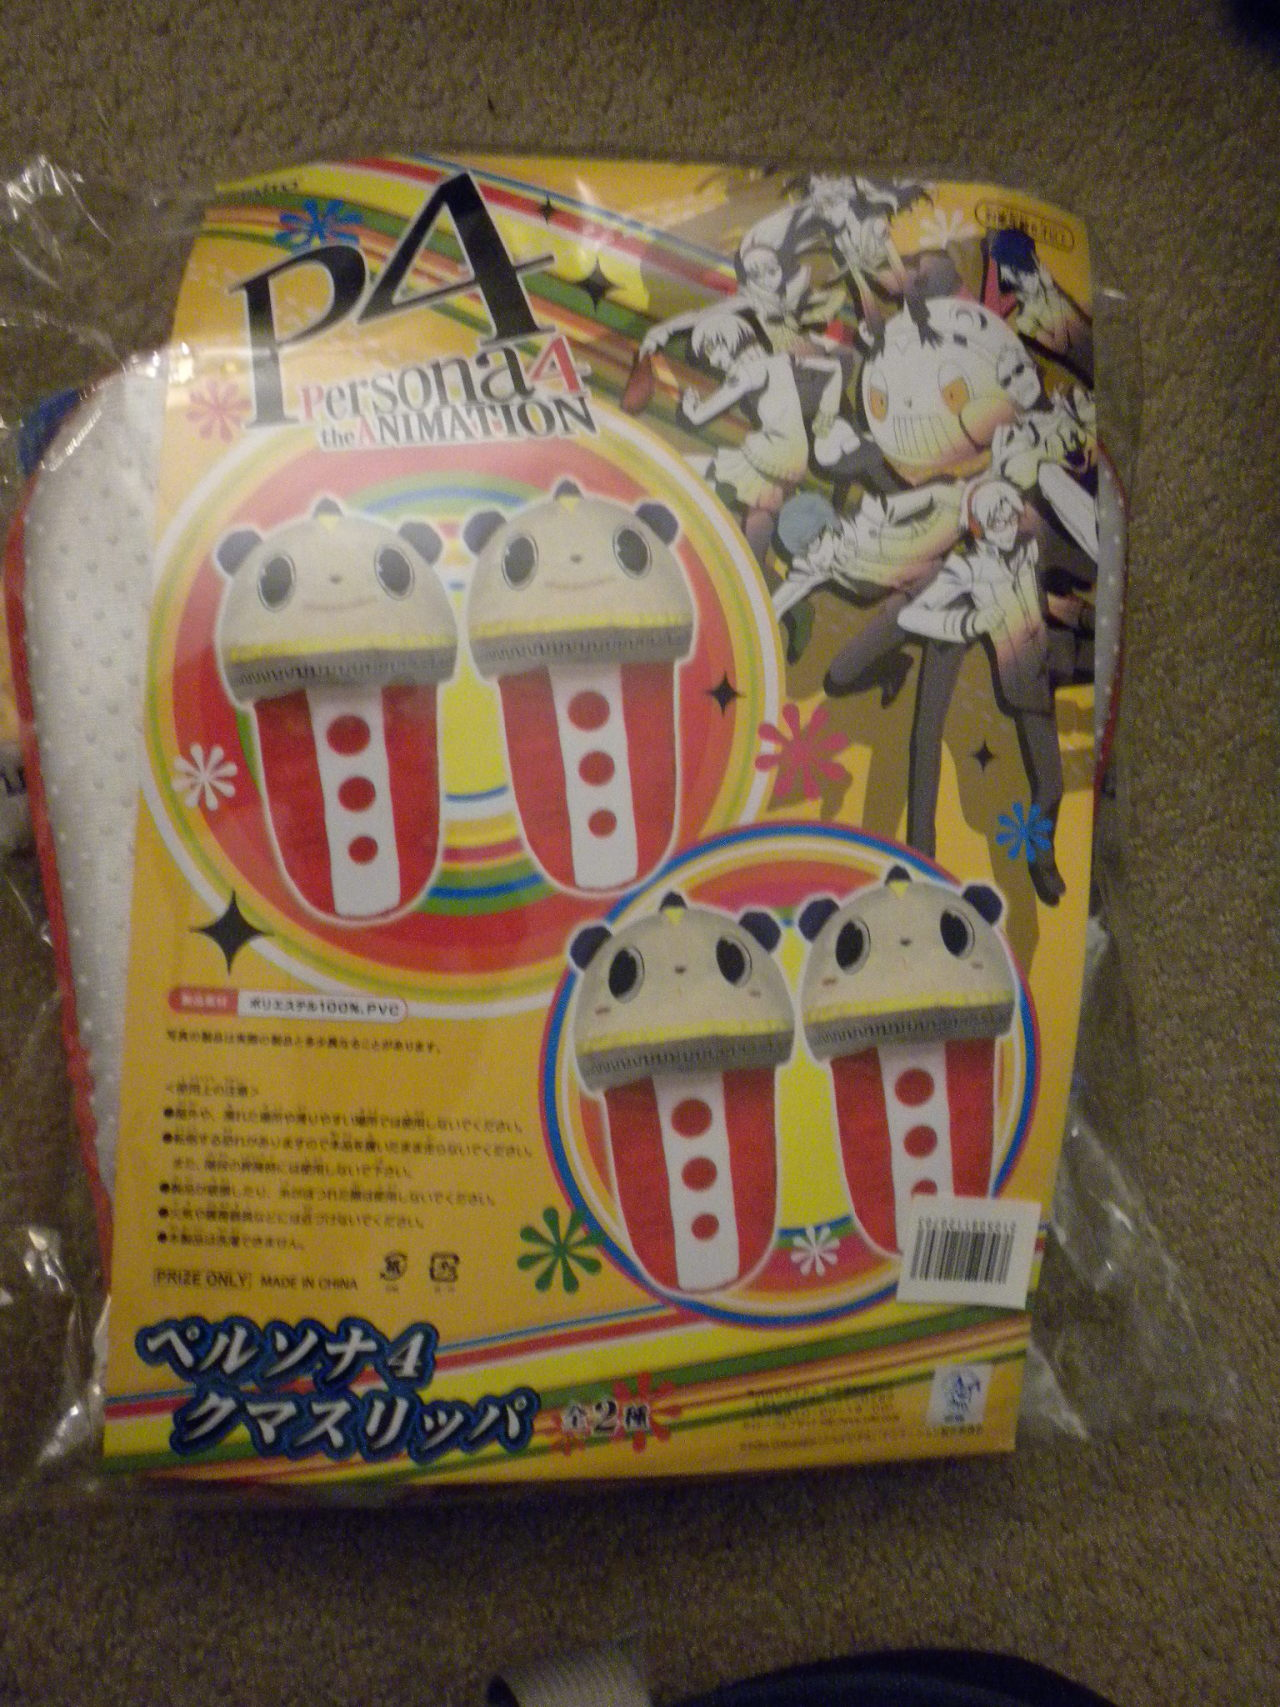 Check Out These Persona 4 Teddie Slippers I didn't even know they made these, but they're beyond rad. The only place I could find a pair was NSCX, but they're sold out. Debating shelling out close to $60 for a pair on eBay. (via kototsuki)